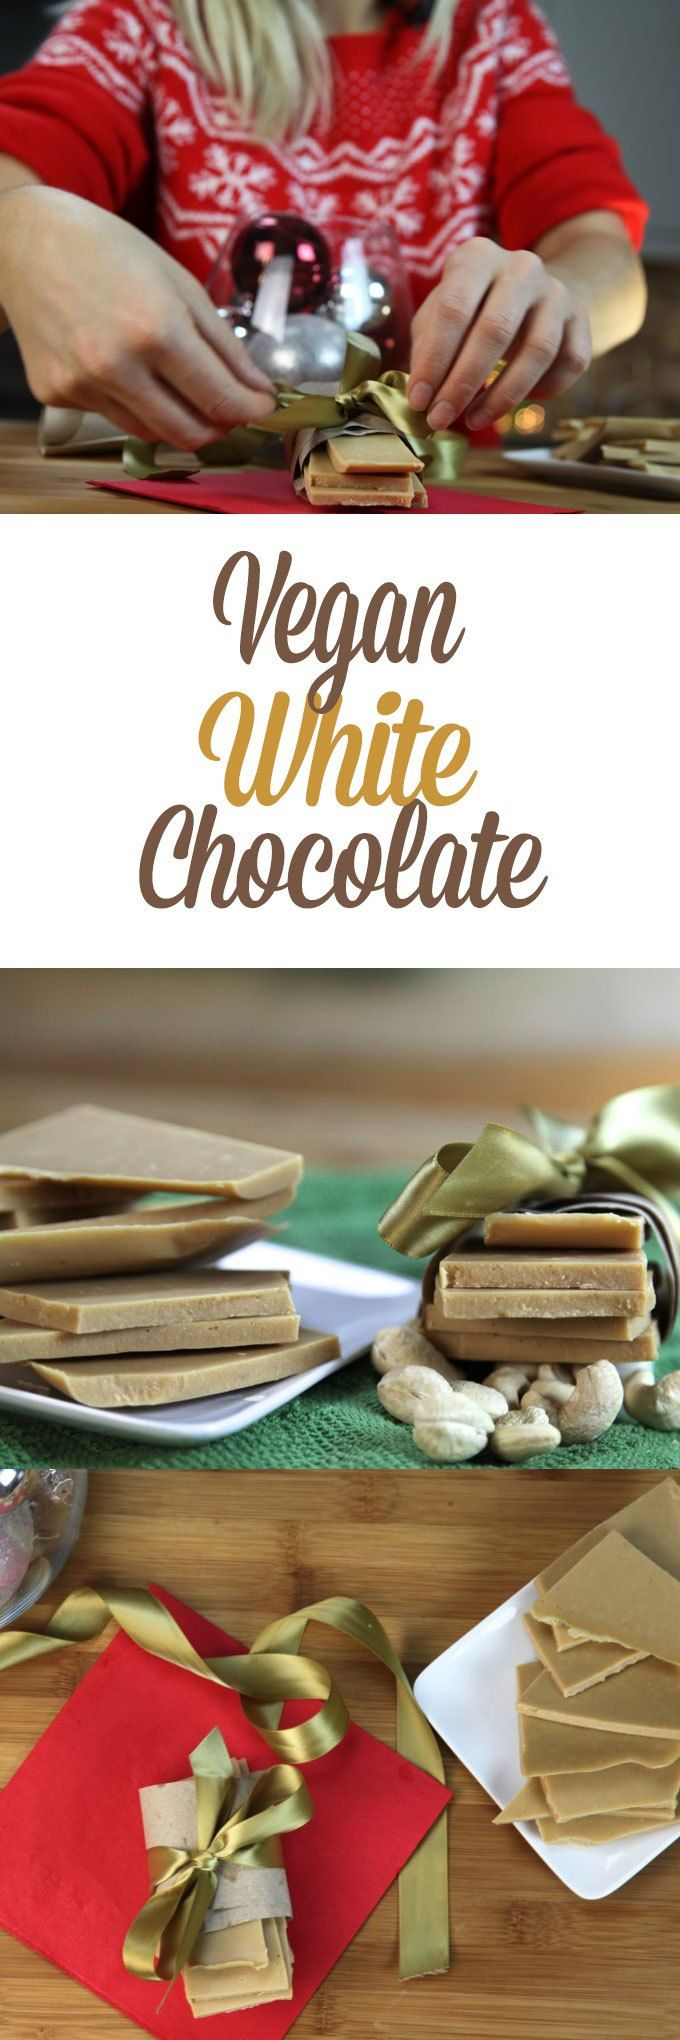 The vegan white chocolate recipe of your dreams.